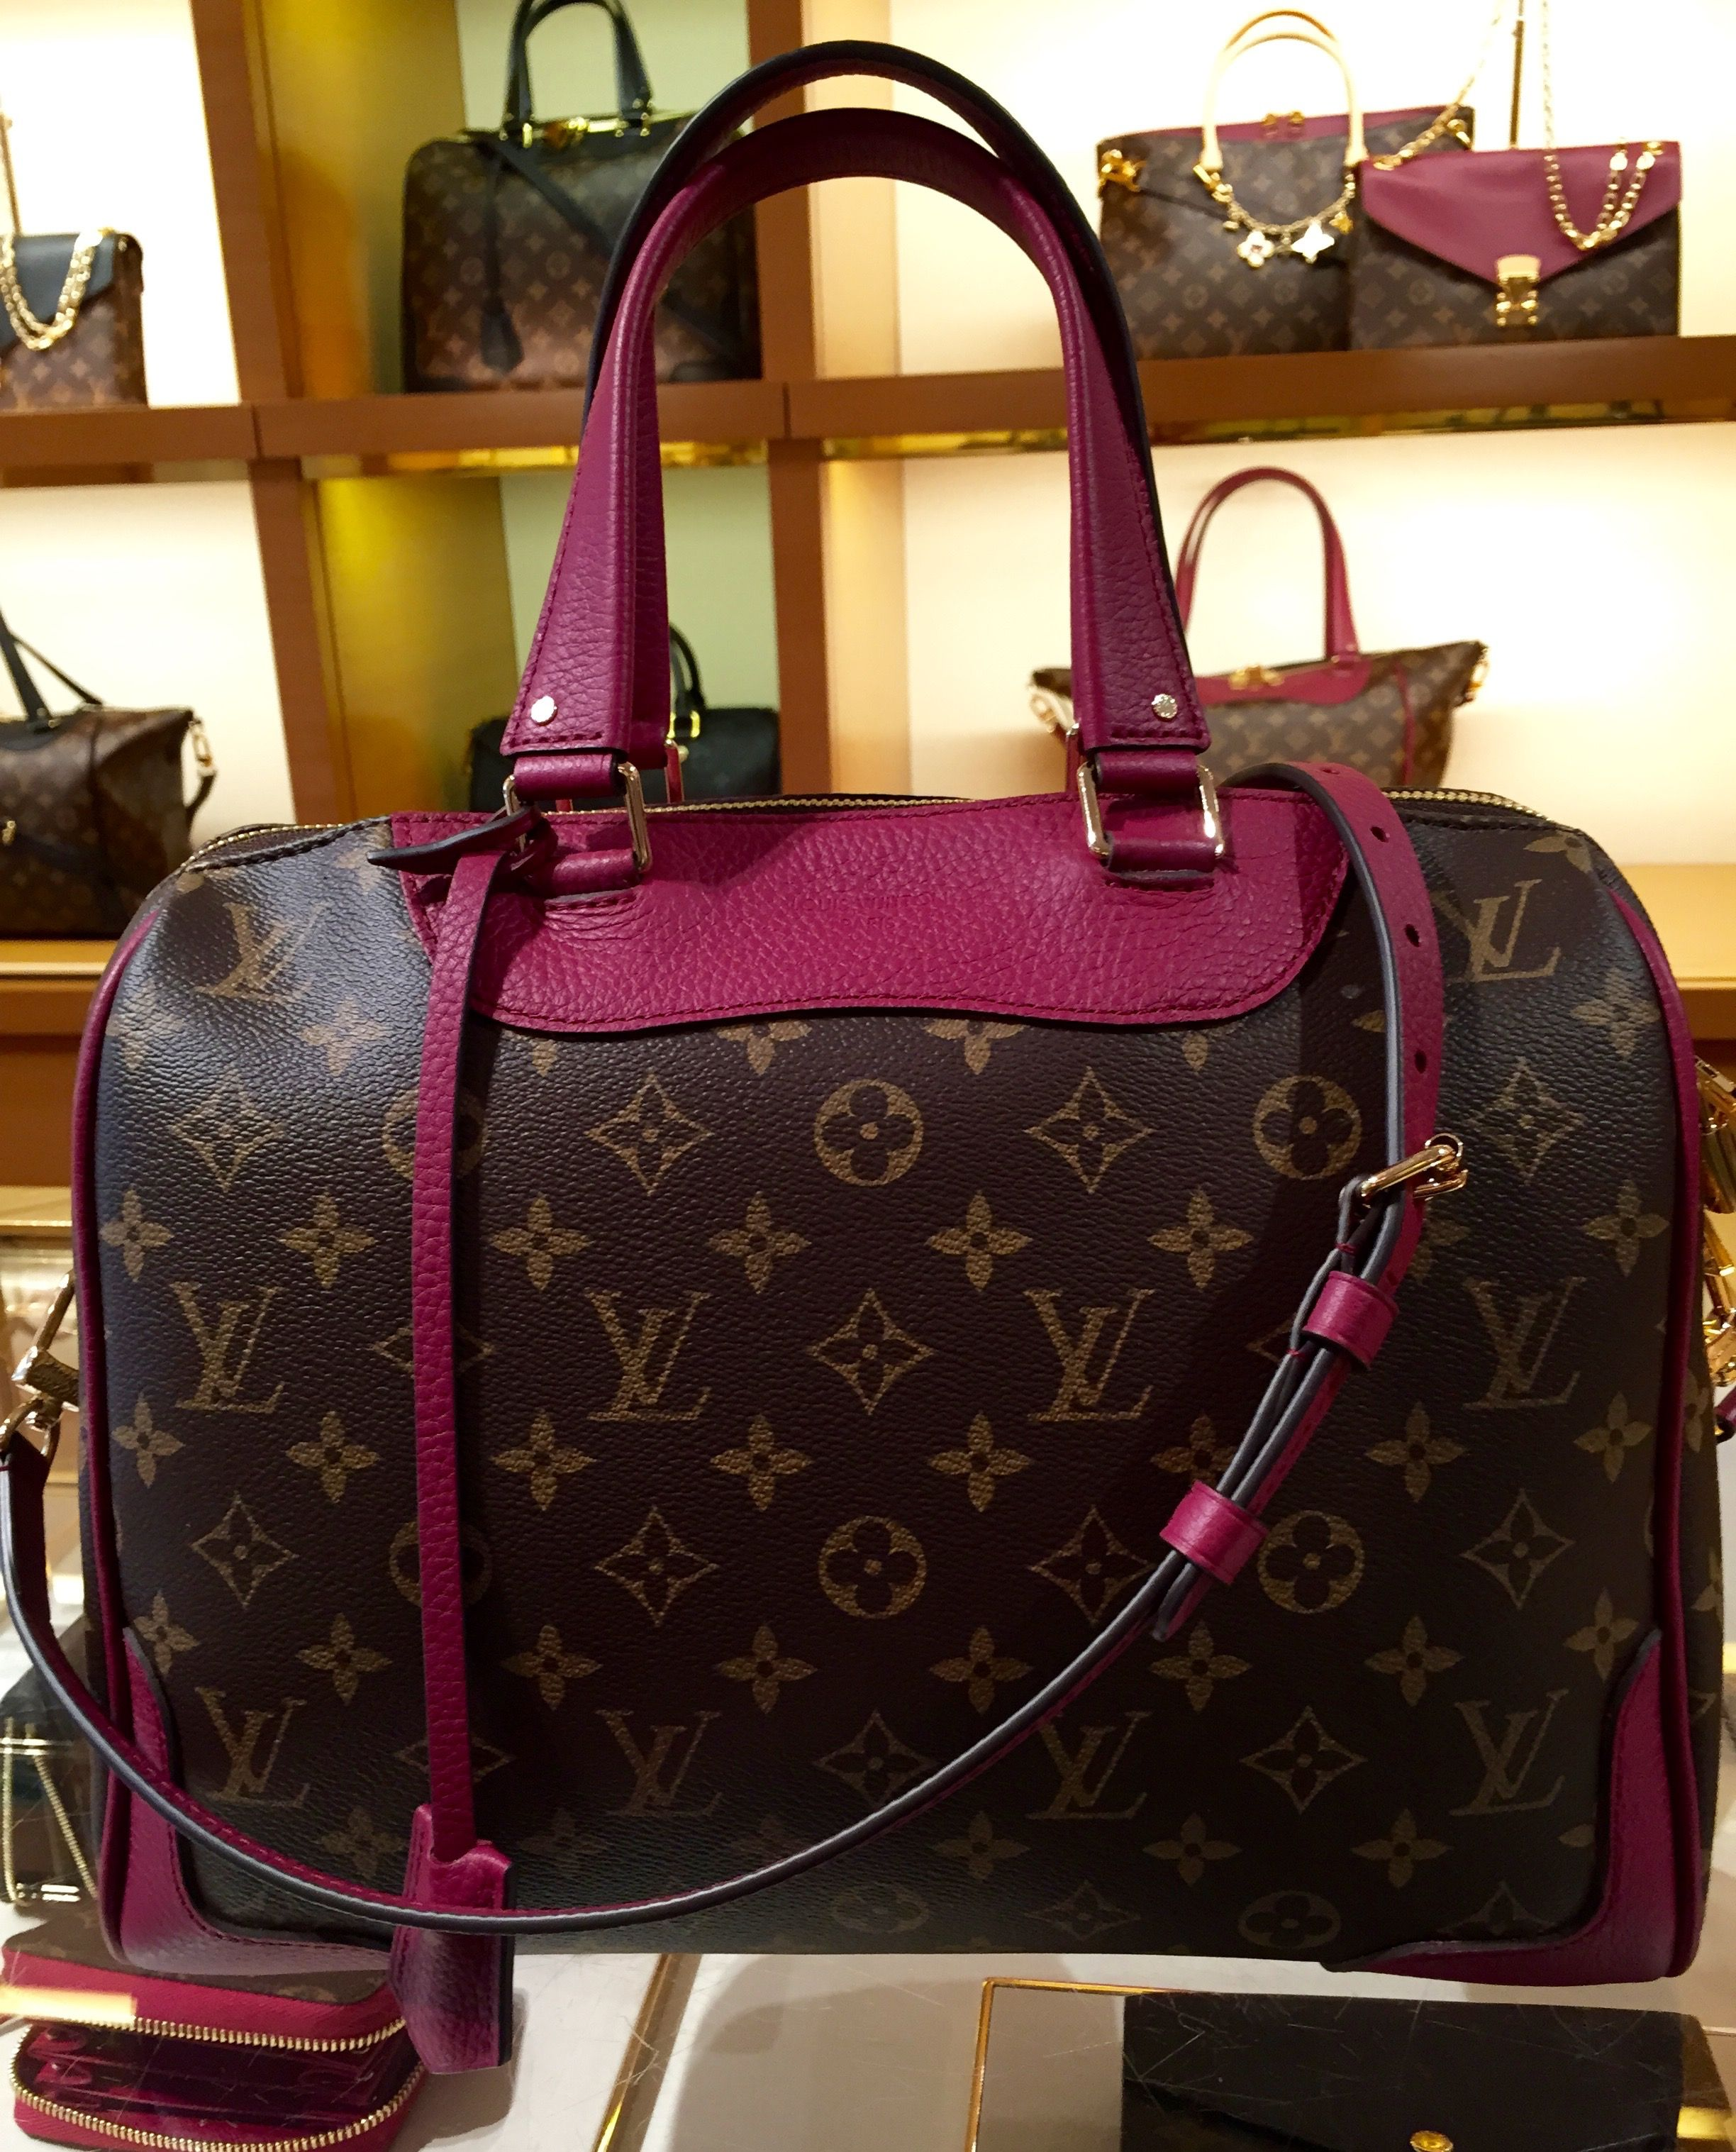 7a6127e0529f Louis Vuitton RETIRO in monogram and aurore. LOVE this bag. It s not a  style I usually carry so I won t buy it but I think it s absolutely  gorgeous!